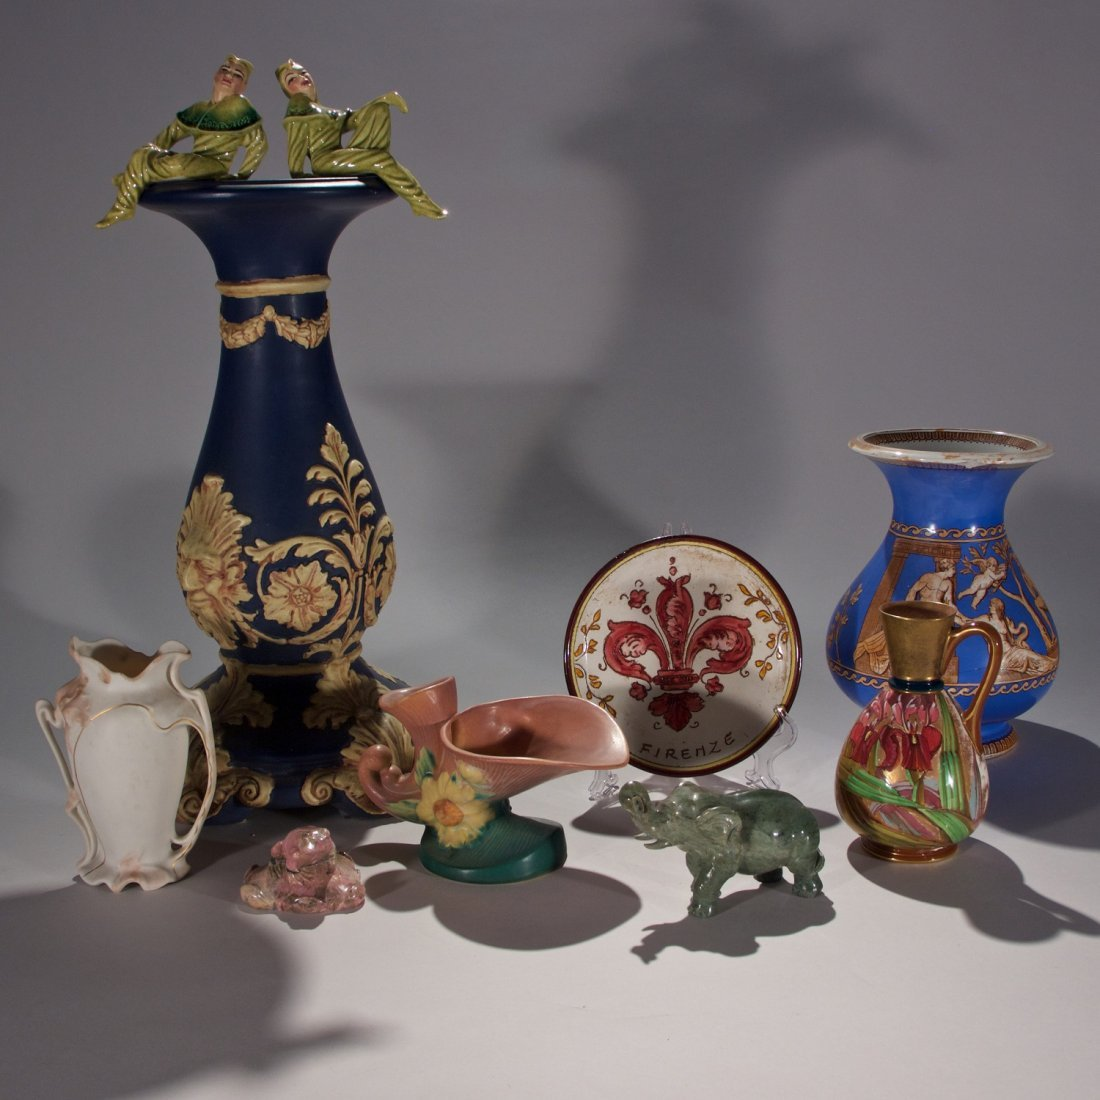 Grouping of Various Porcelain and Stone Objects